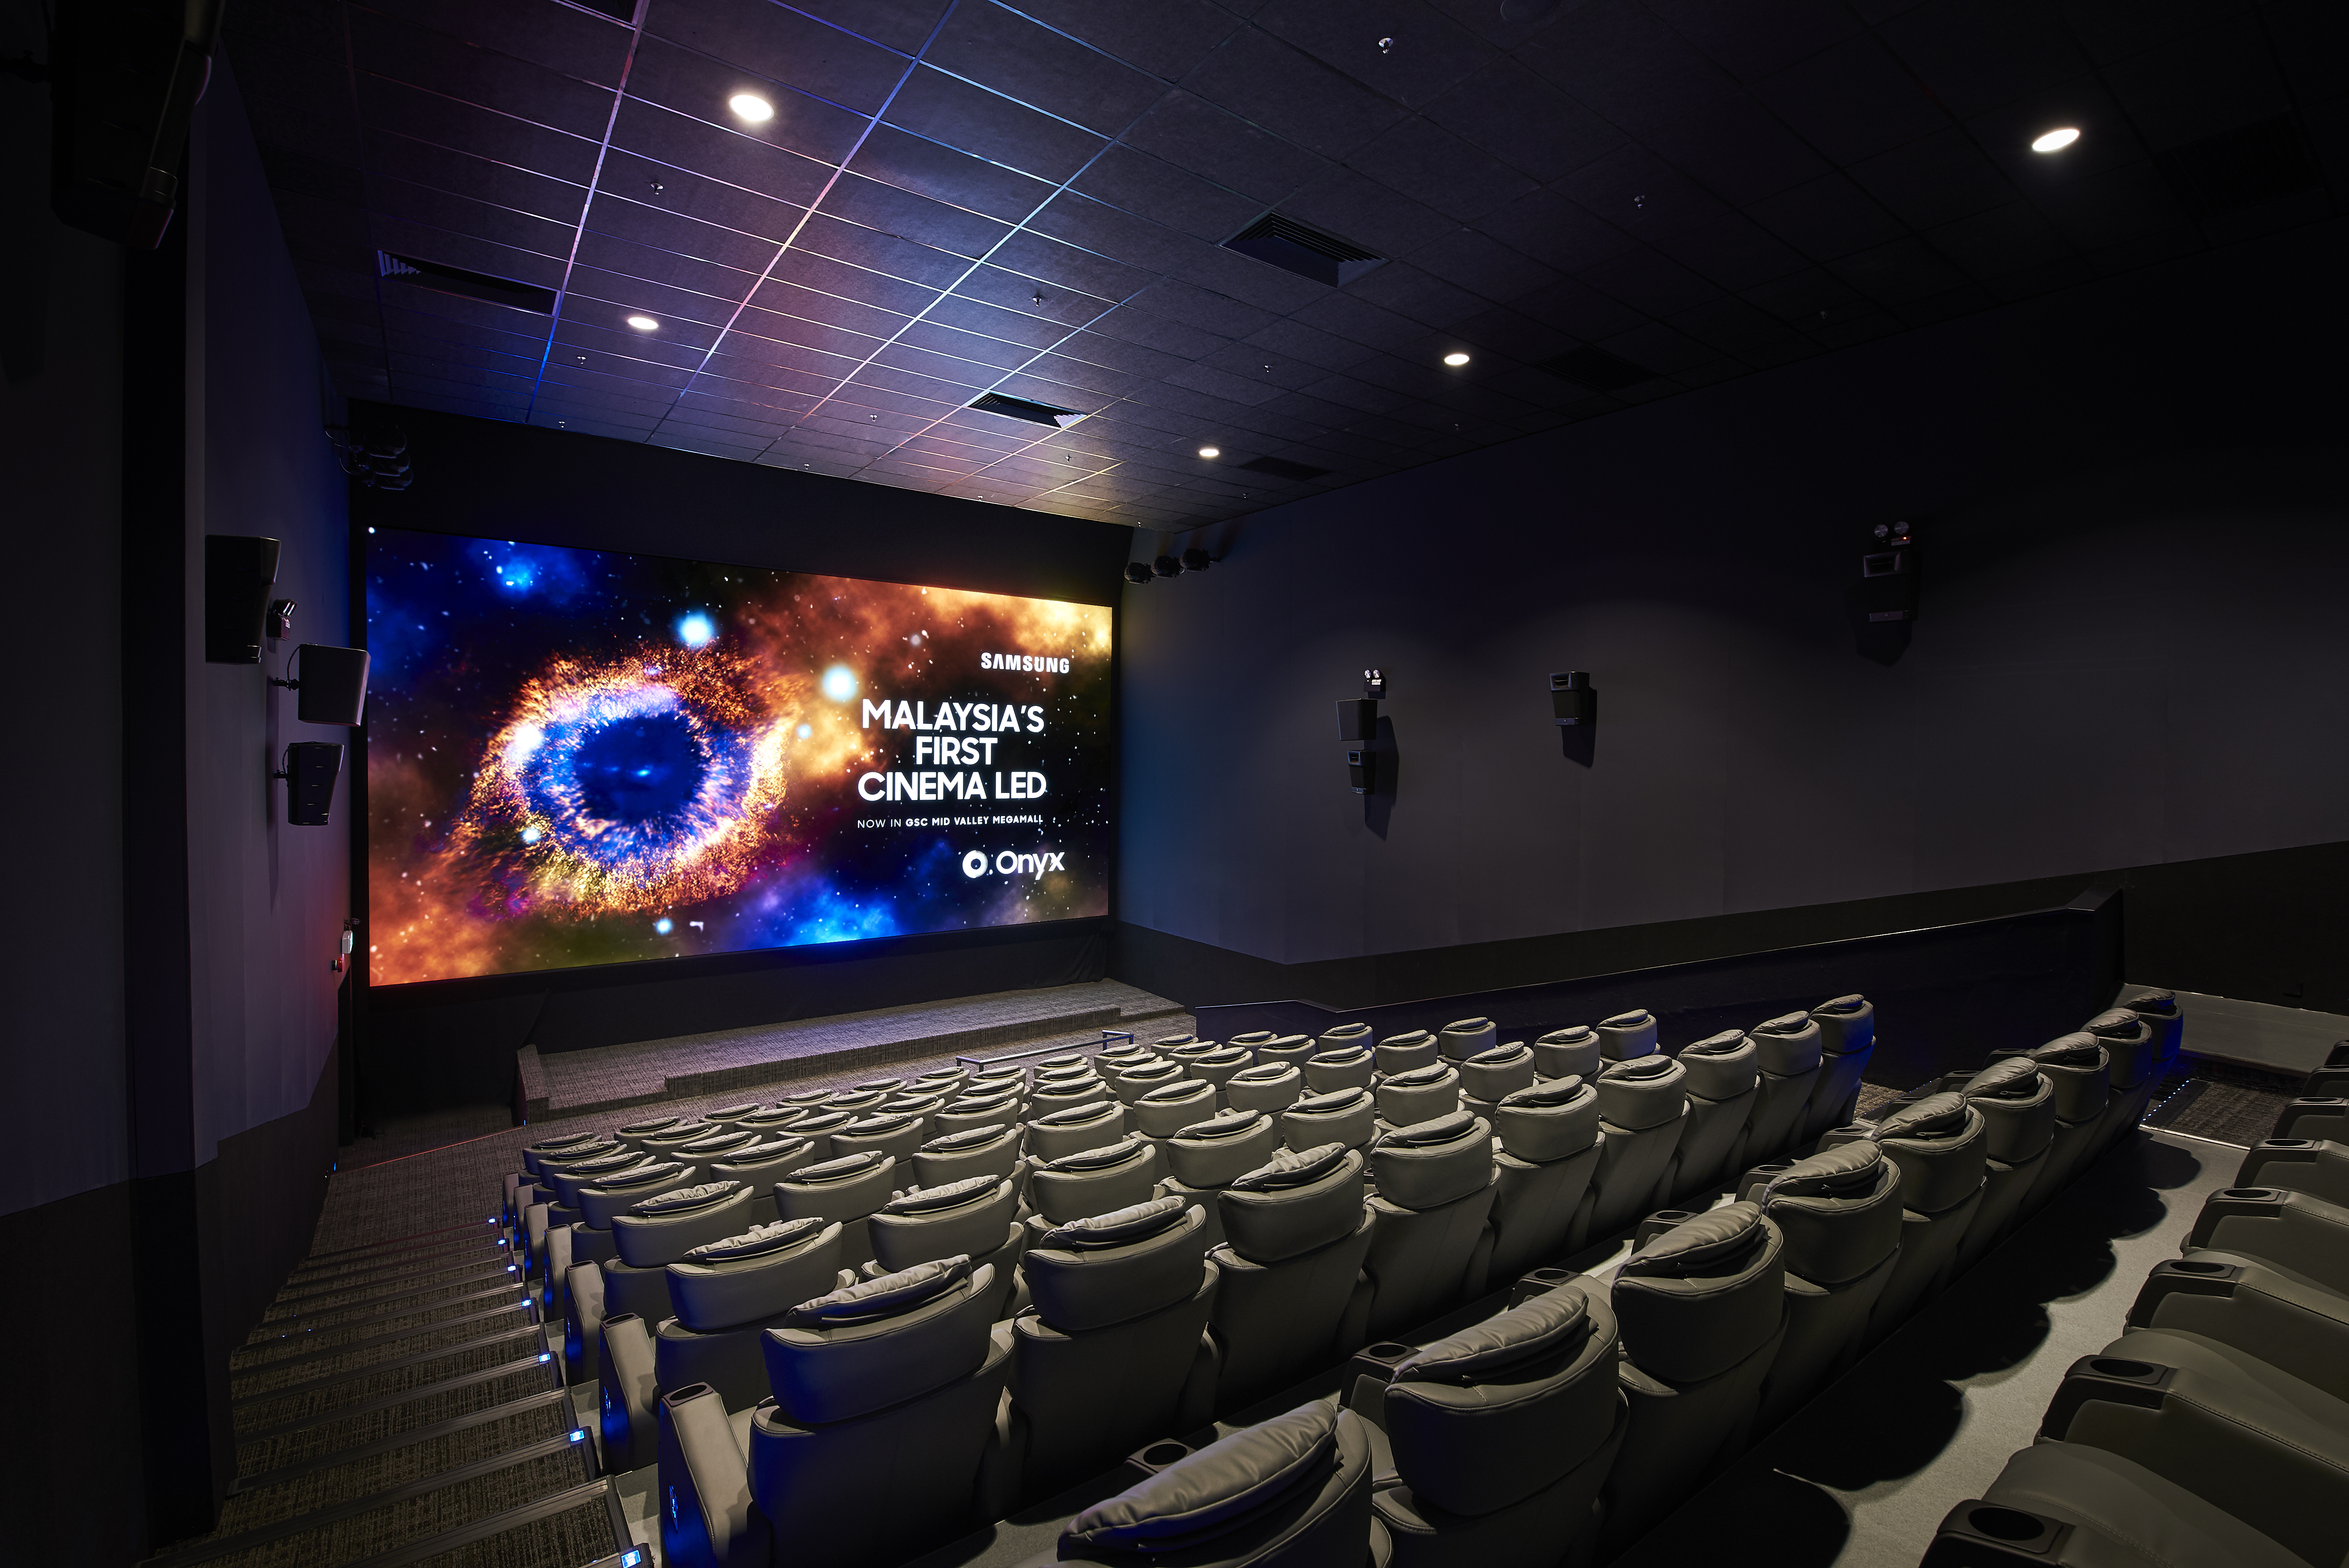 Gsc Unveils Giant Samsung Led Cinema Screen Onyx The Star